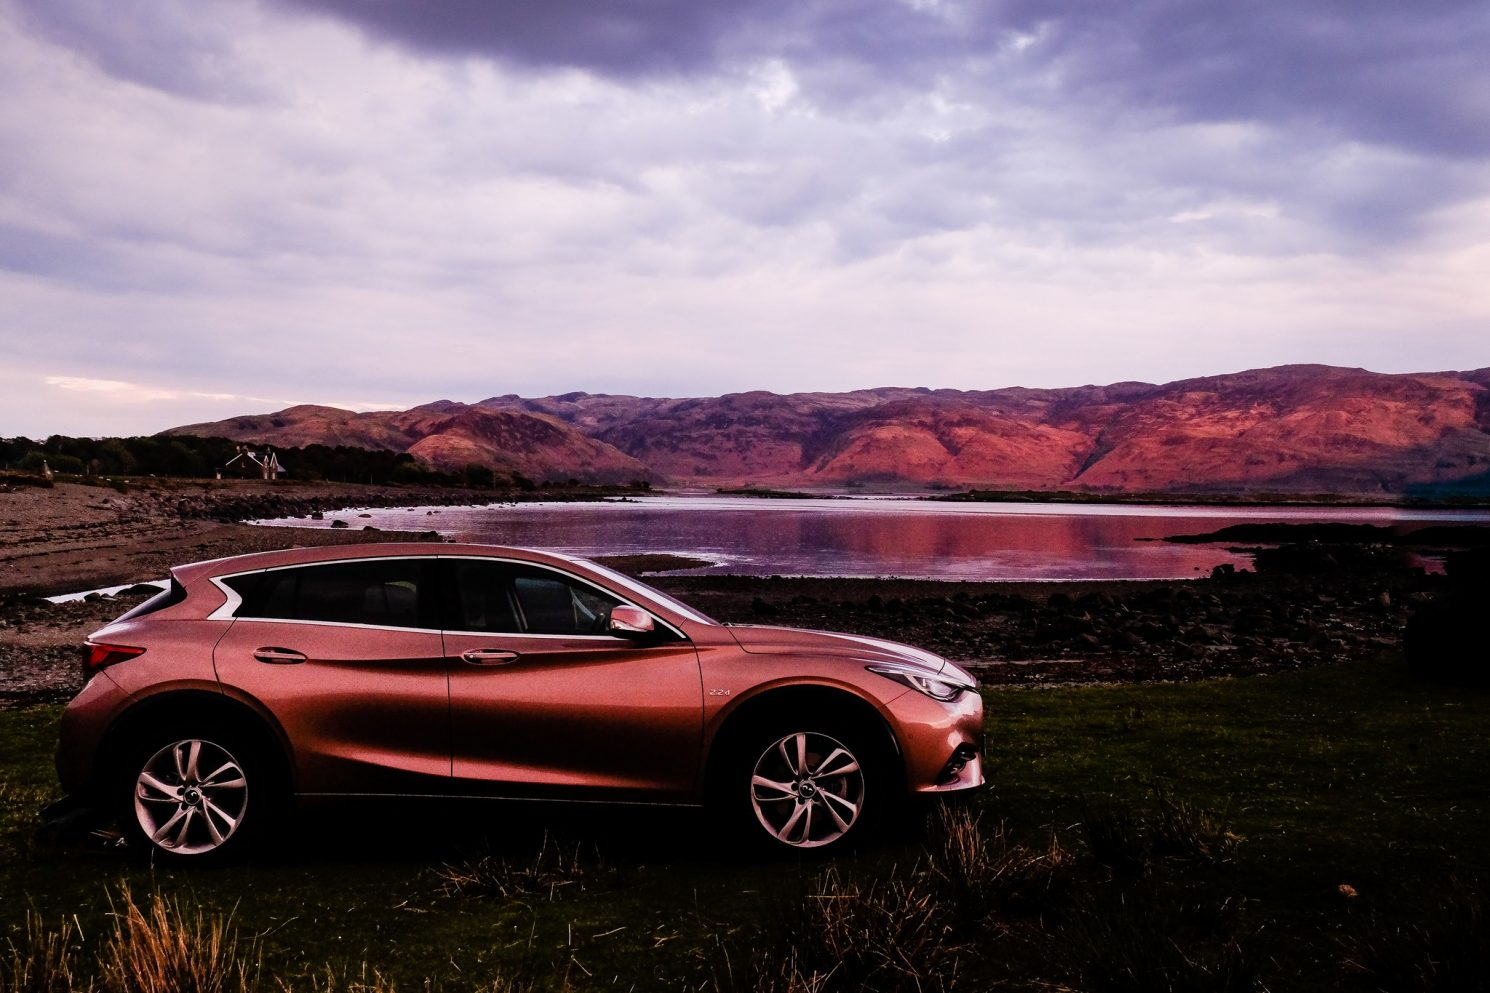 Infiniti Q30 at the campsite at Lochbuie, Isle of Mull in the Highlands of Scotland on Mallory on Travel adventure travel, photography, travel Iain Mallory_Mull3573